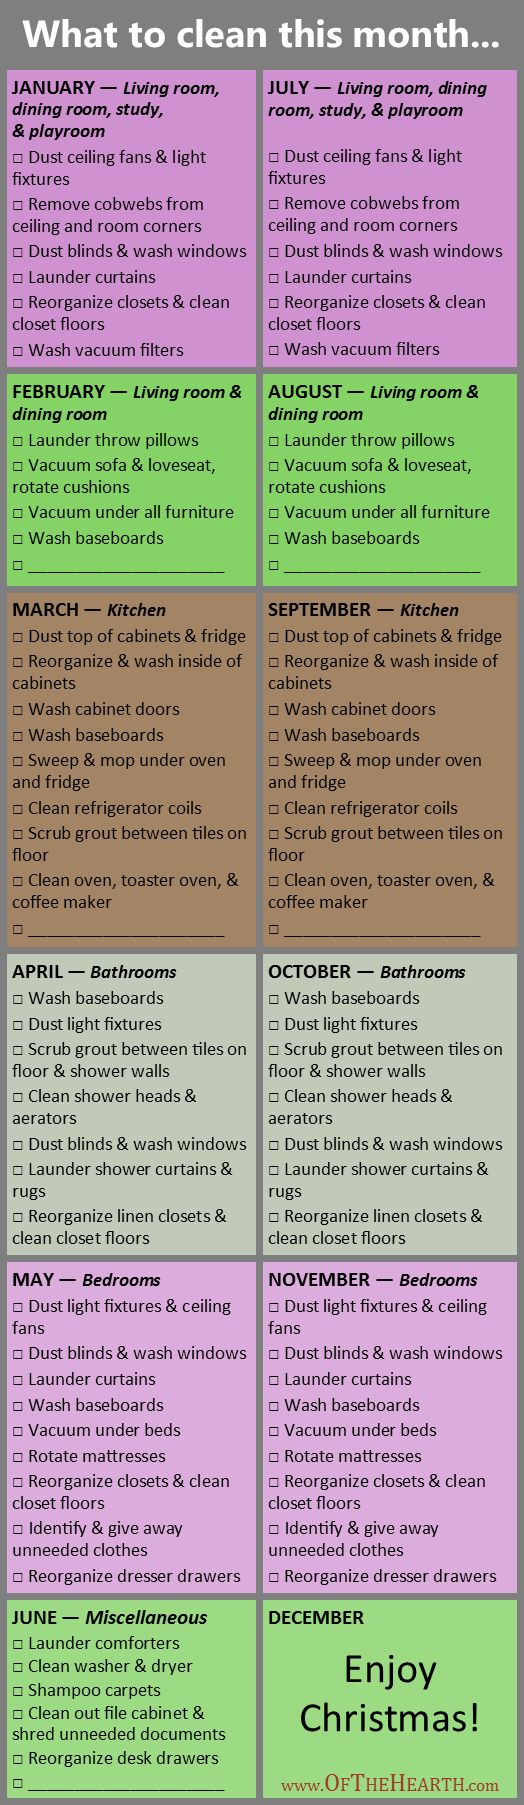 Revisions and Customizations to My Cleaning Schedule